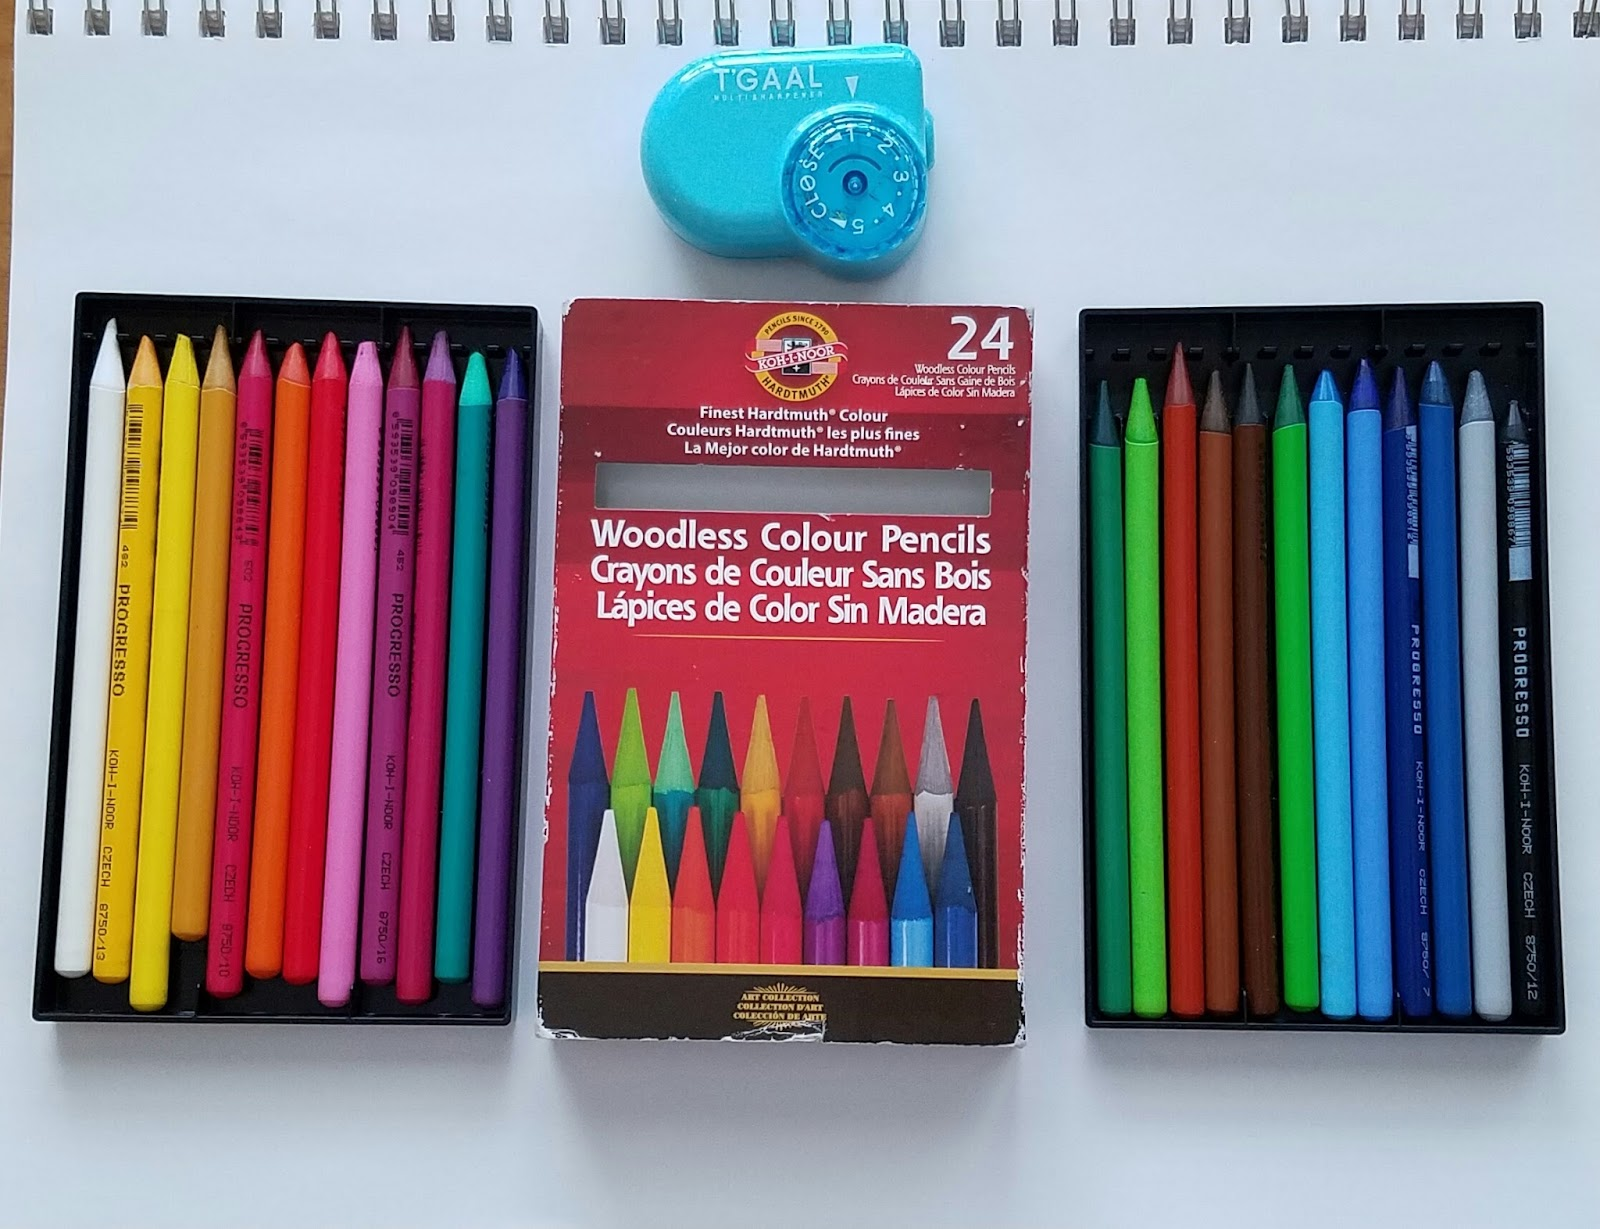 The color-play coloring book moma - The Coloring Books That Travel With Me Are Always Changing From Journey To Journey But This Set Of Koh I Noor Woodless Colored Pencils And My